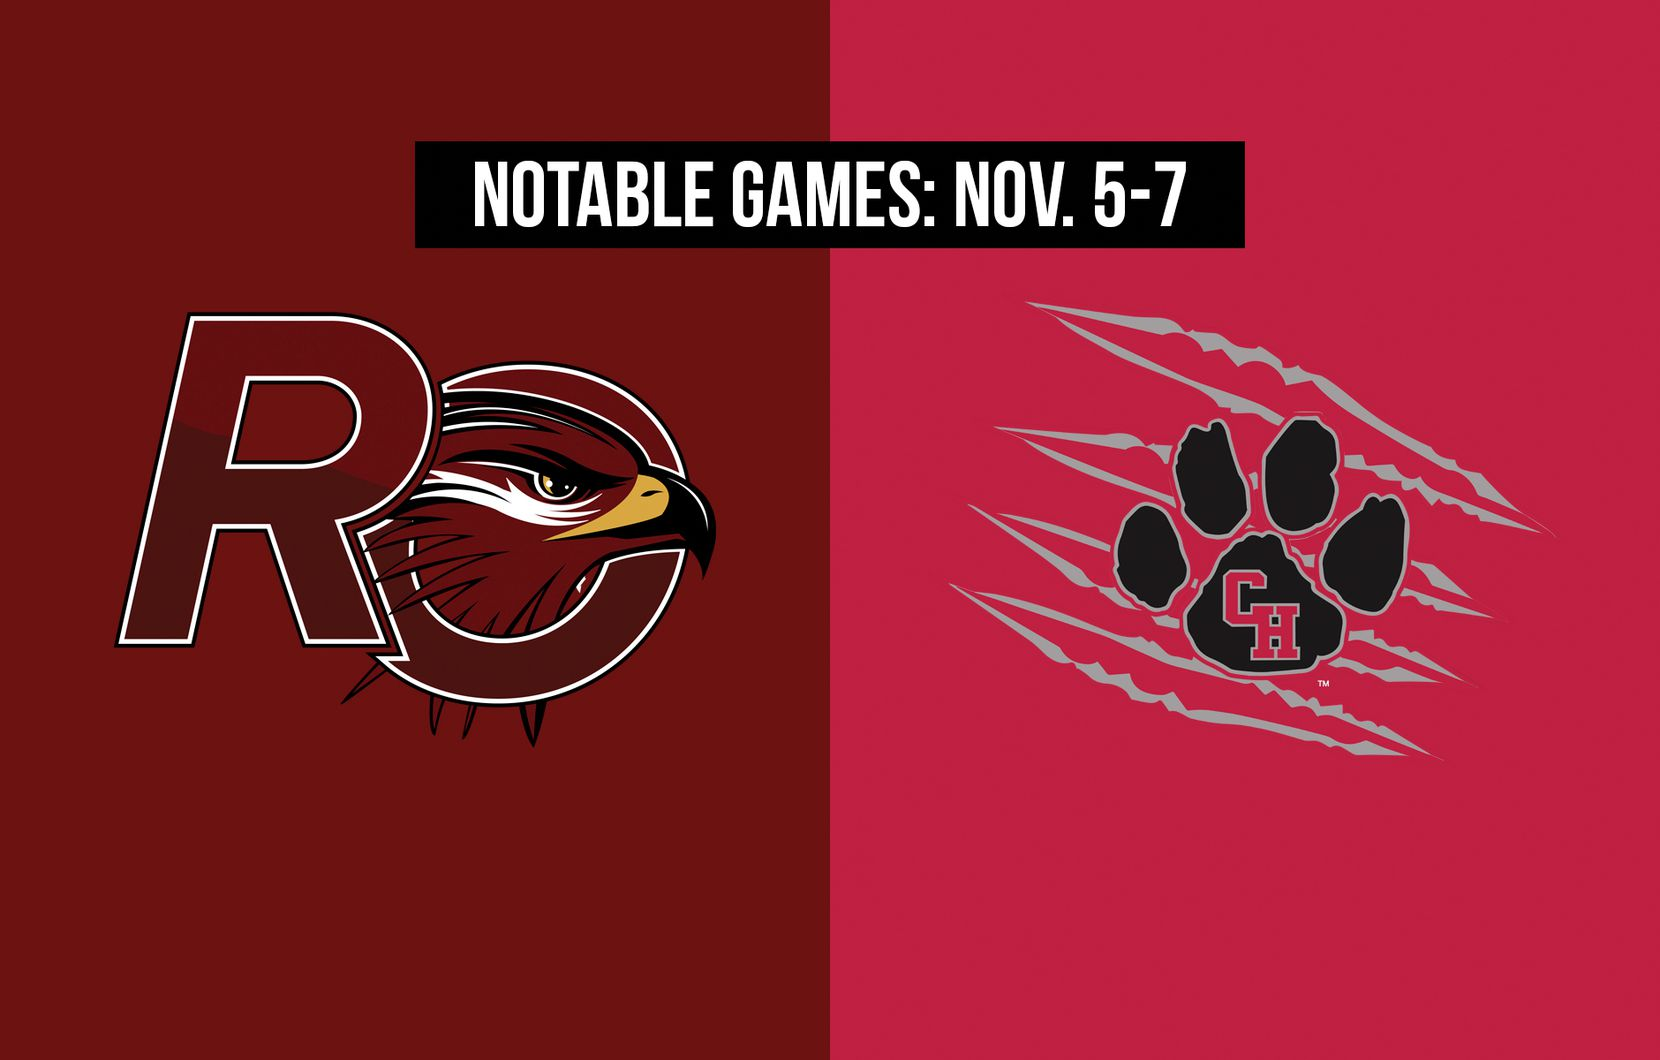 Notable games for the week of Nov. 5-7 of the 2020 season: Red Oak vs. Colleyville Heritage.